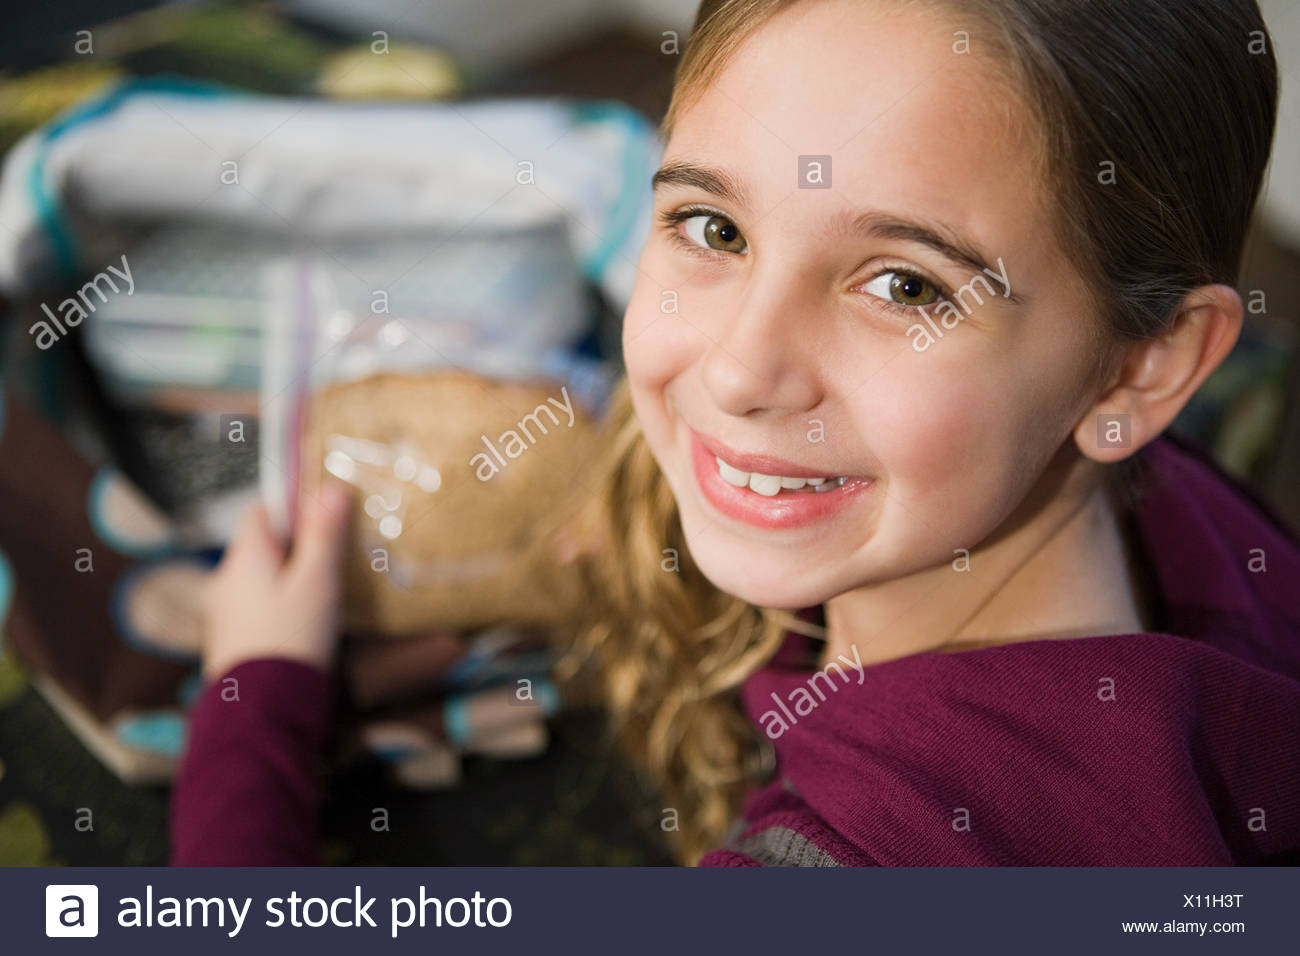 Girl with a sandwich - Stock Image